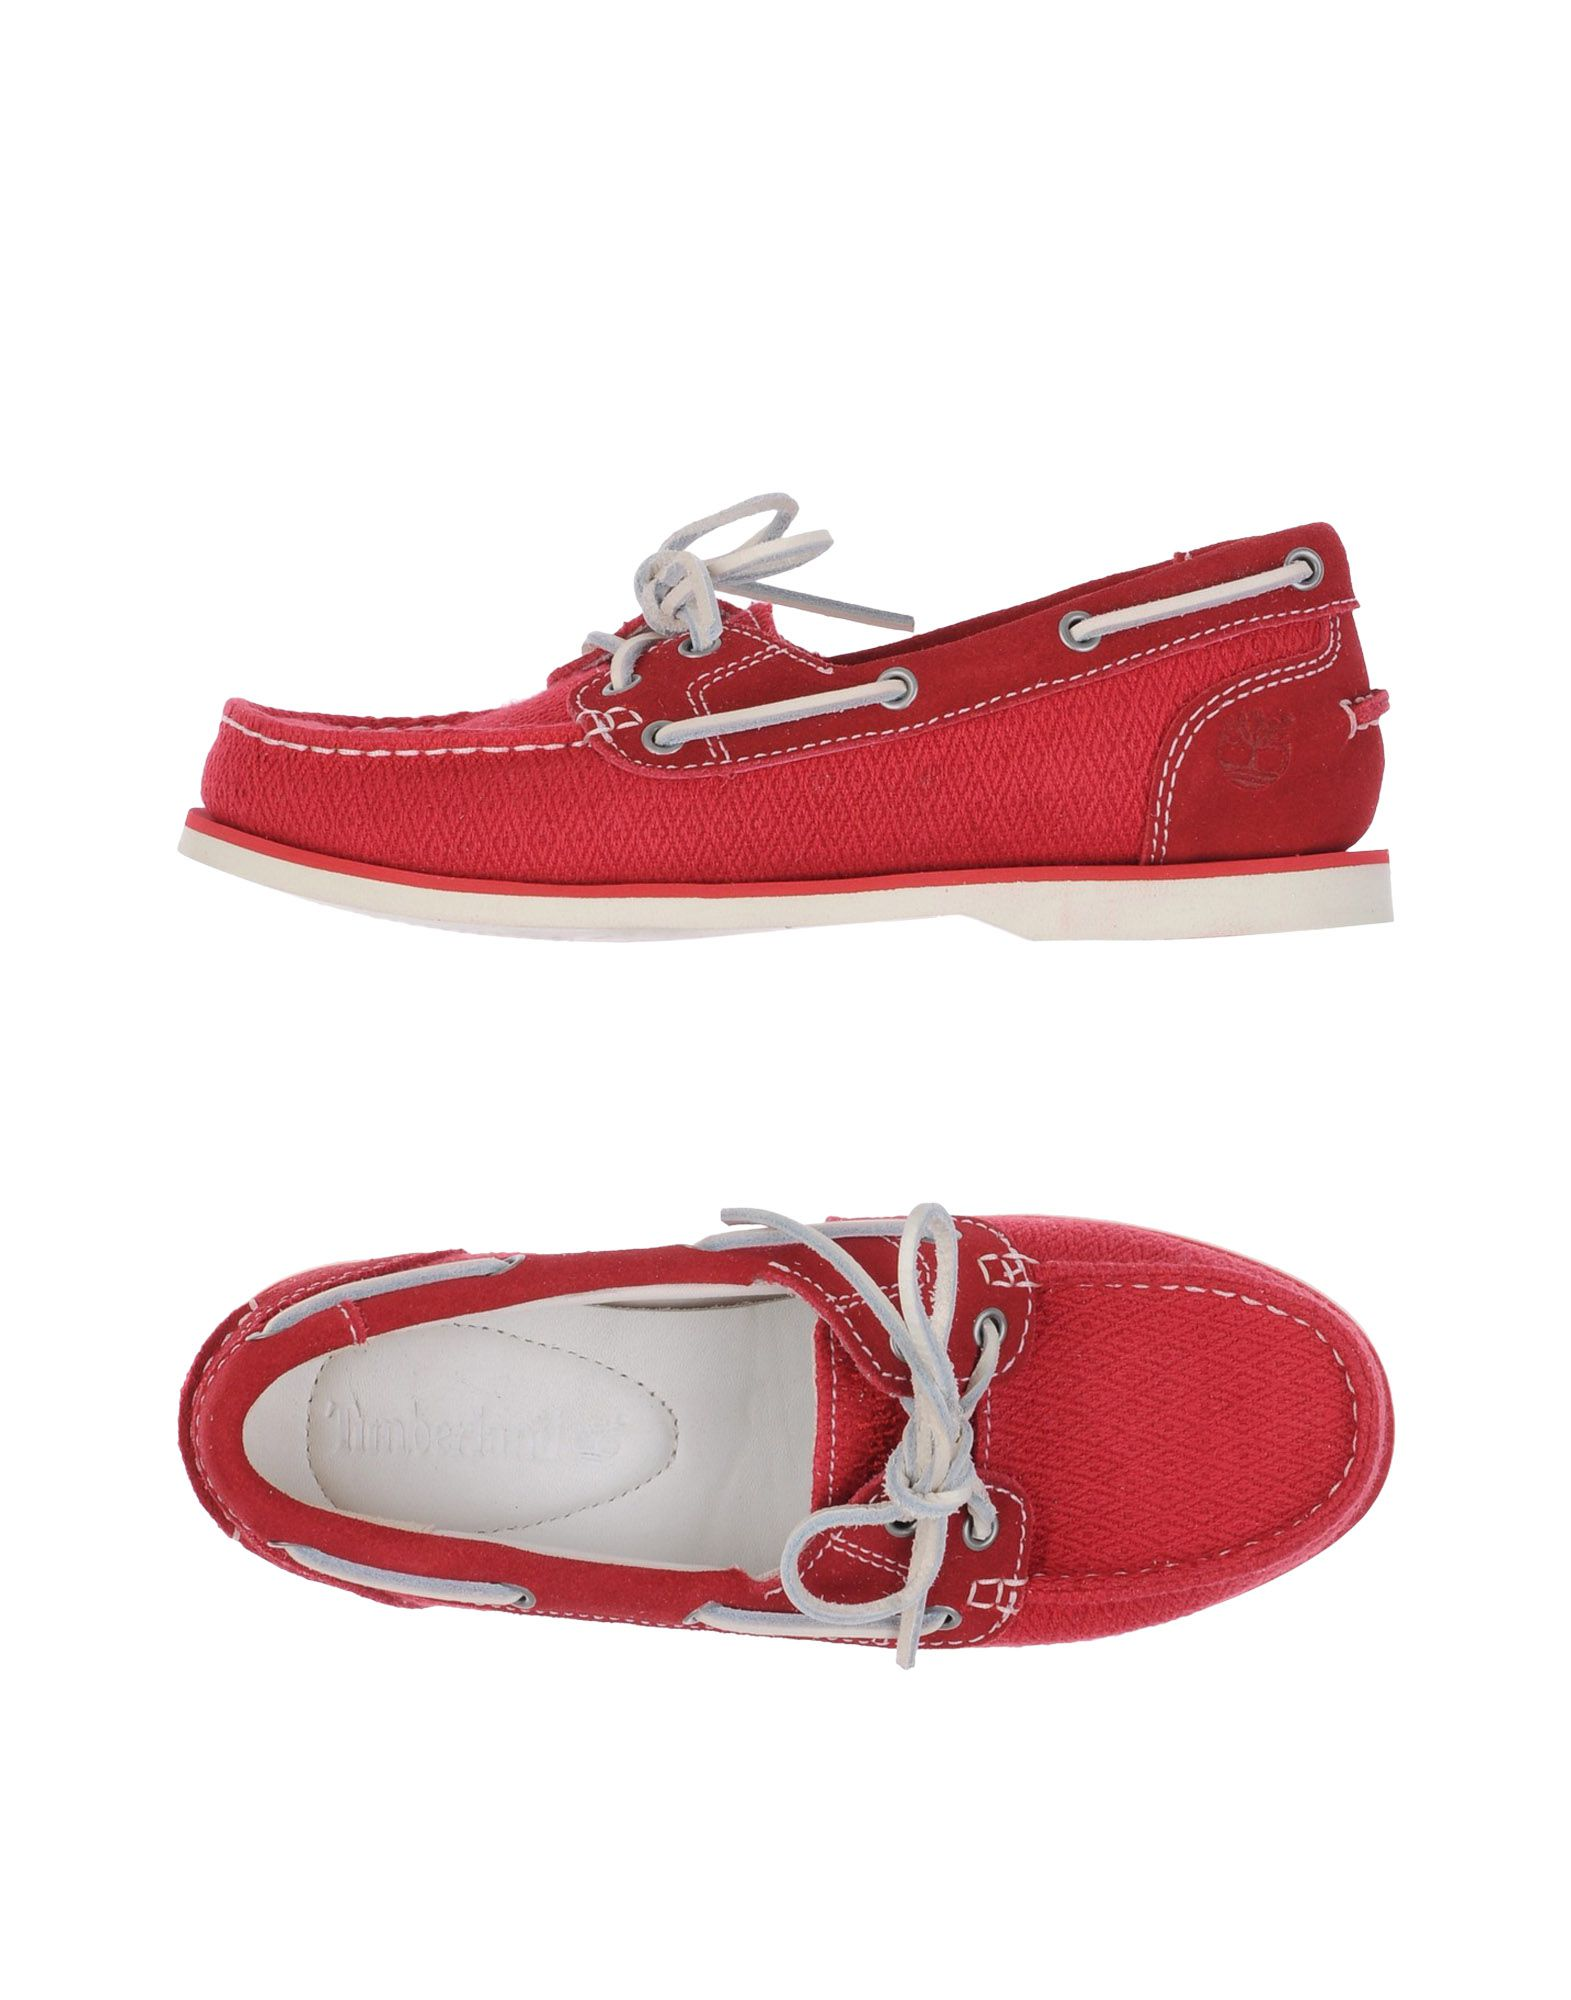 Timberland - Footwear - Loafers - On Yoox.com